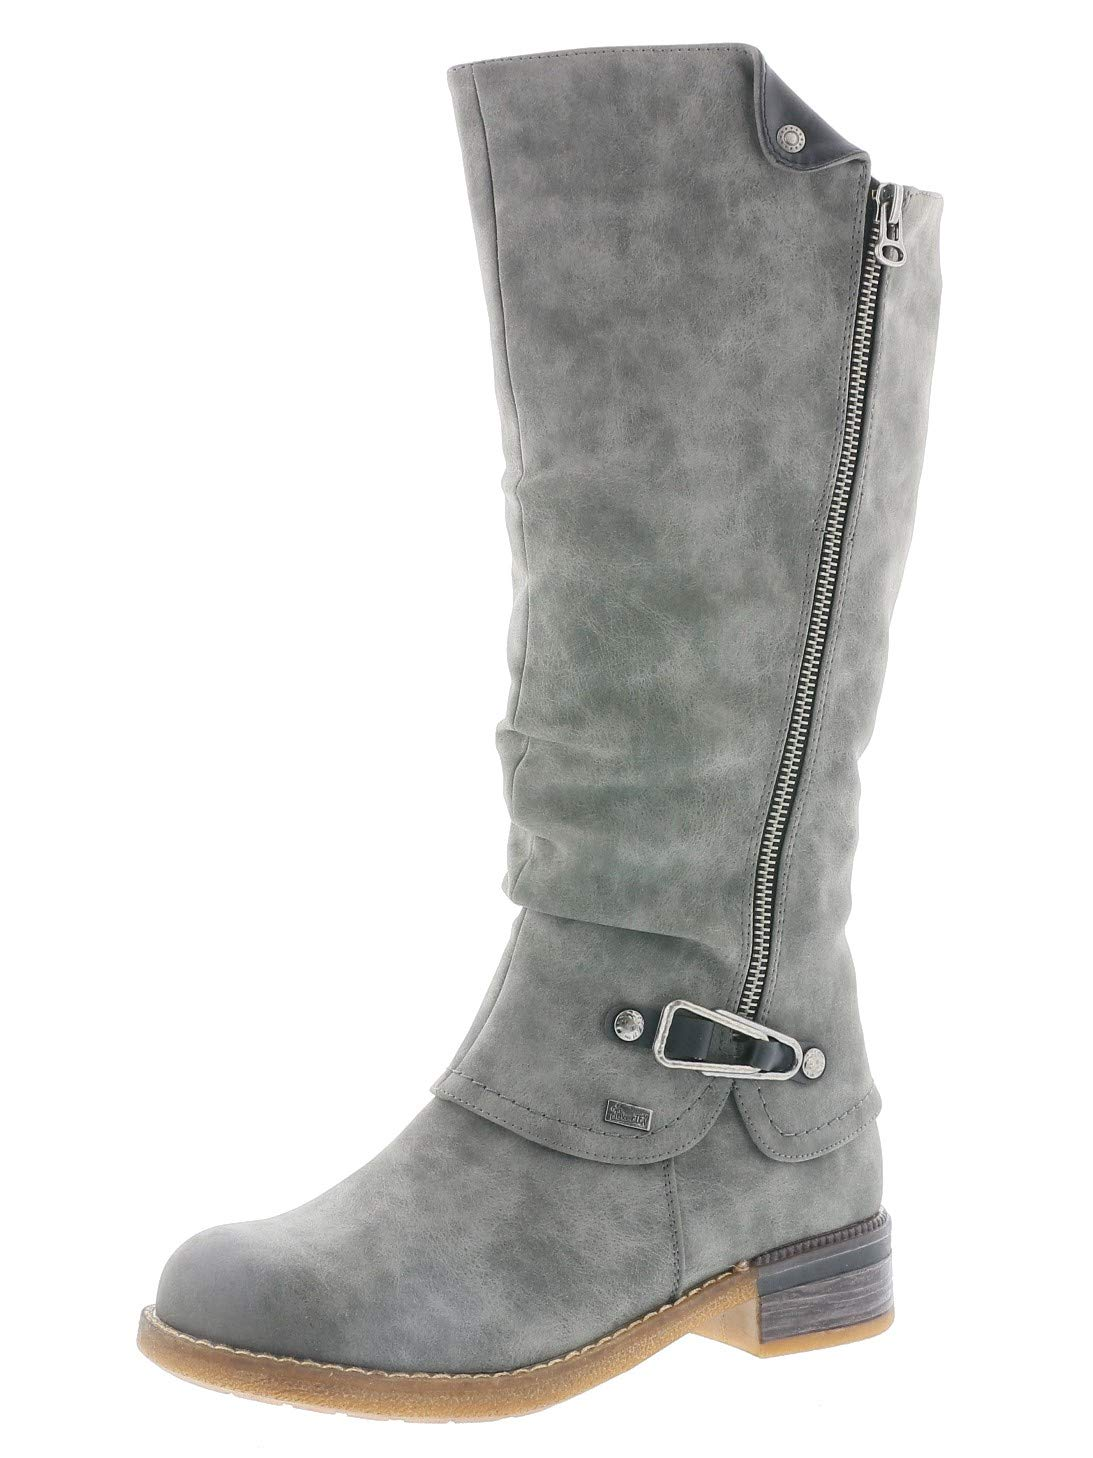 what are the best horse riding boots